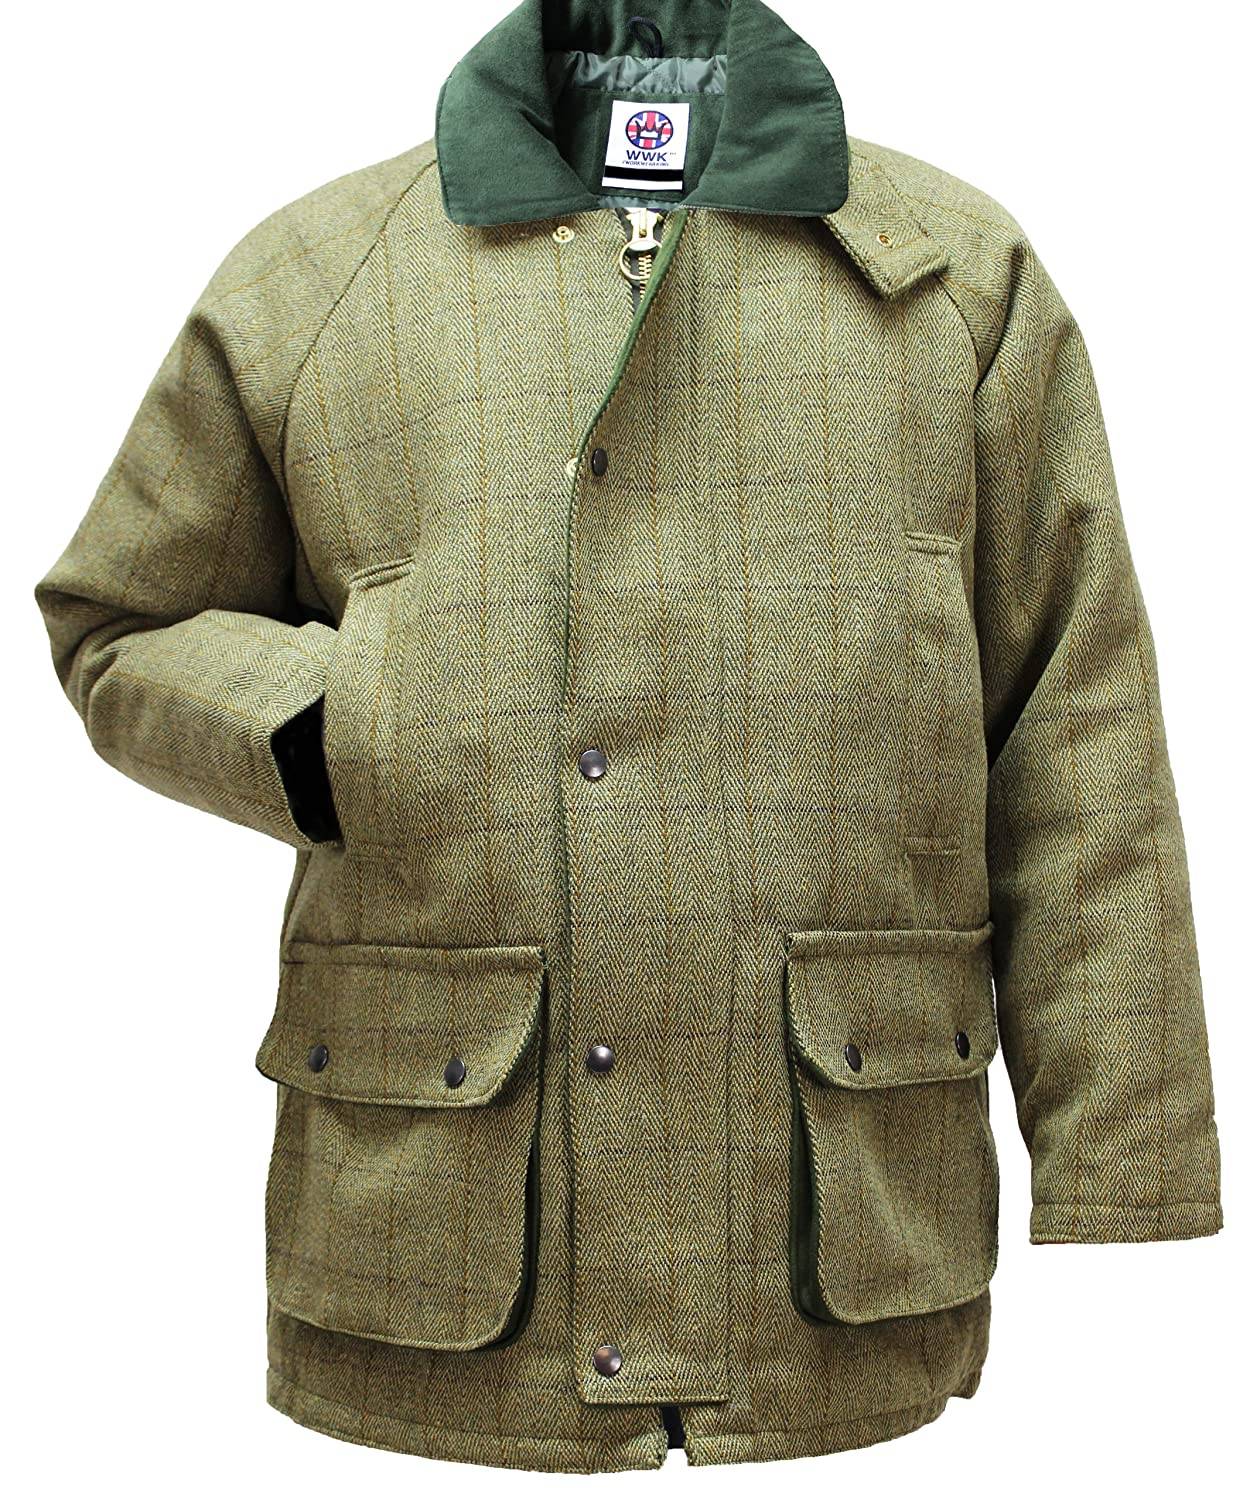 Hunting Jacket Australia Hunting Shooting Jacket